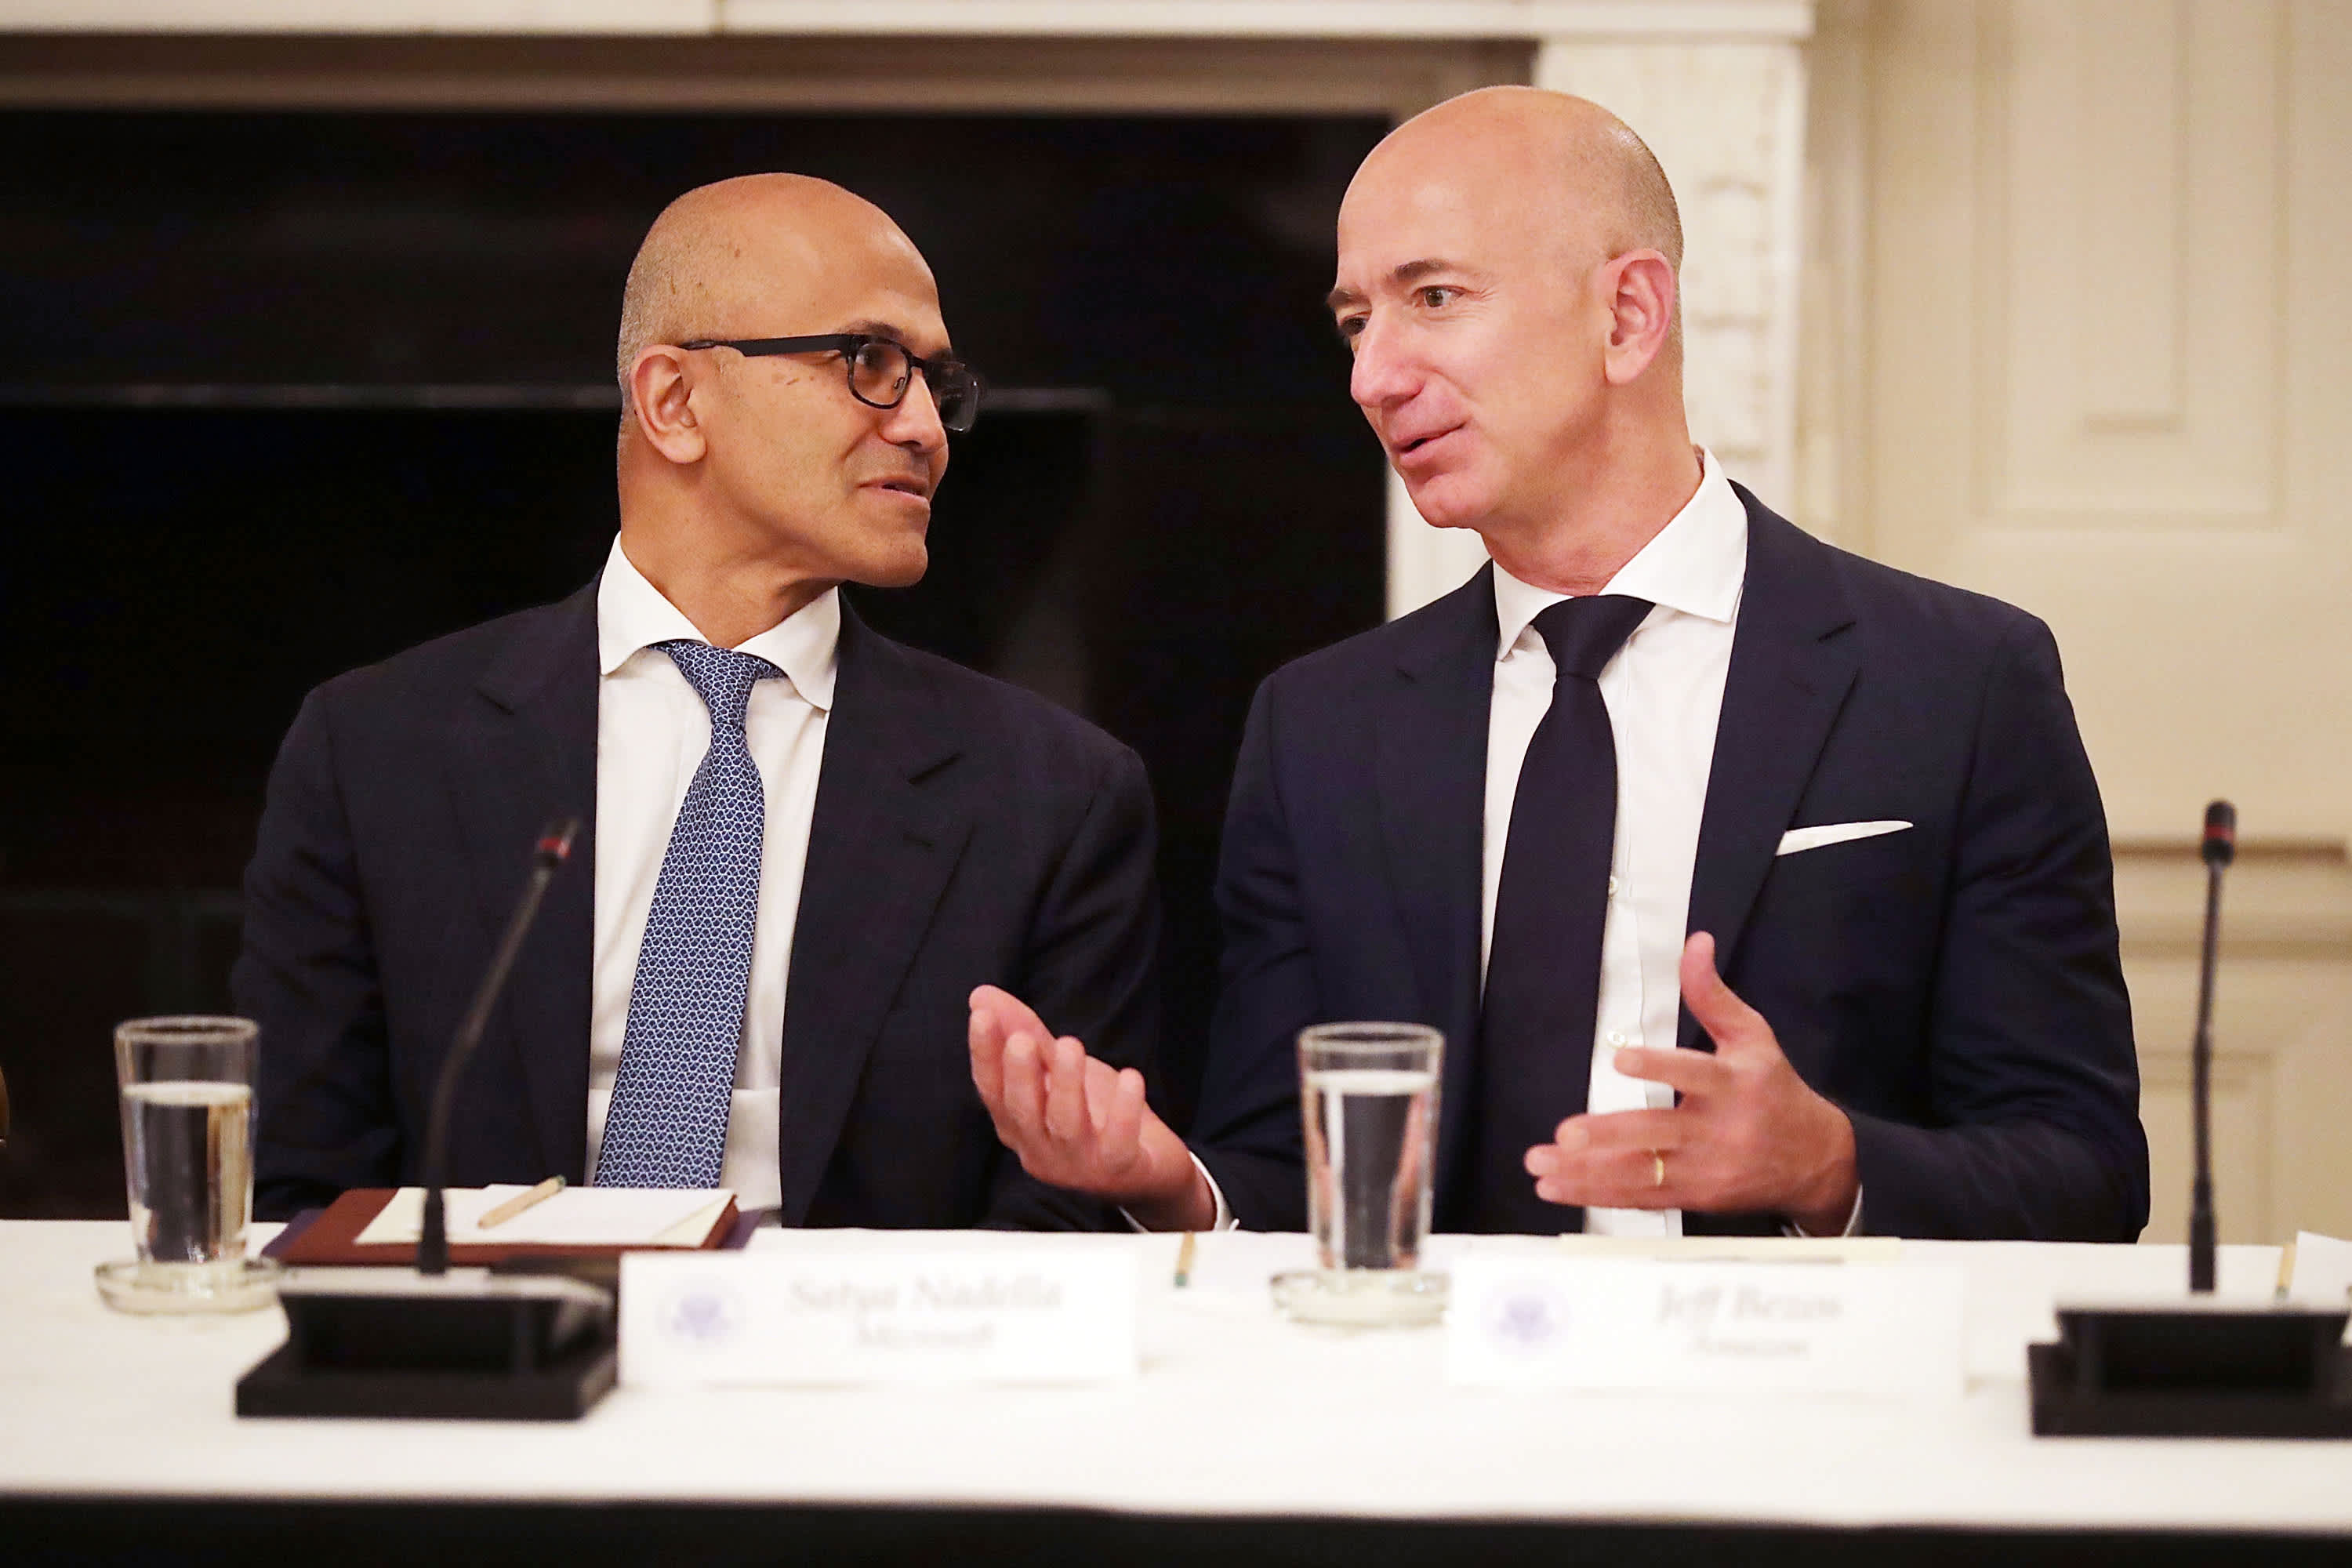 Microsoft unveils Azure Orbital competing with Amazon to connect satellites to the cloud – CNBC